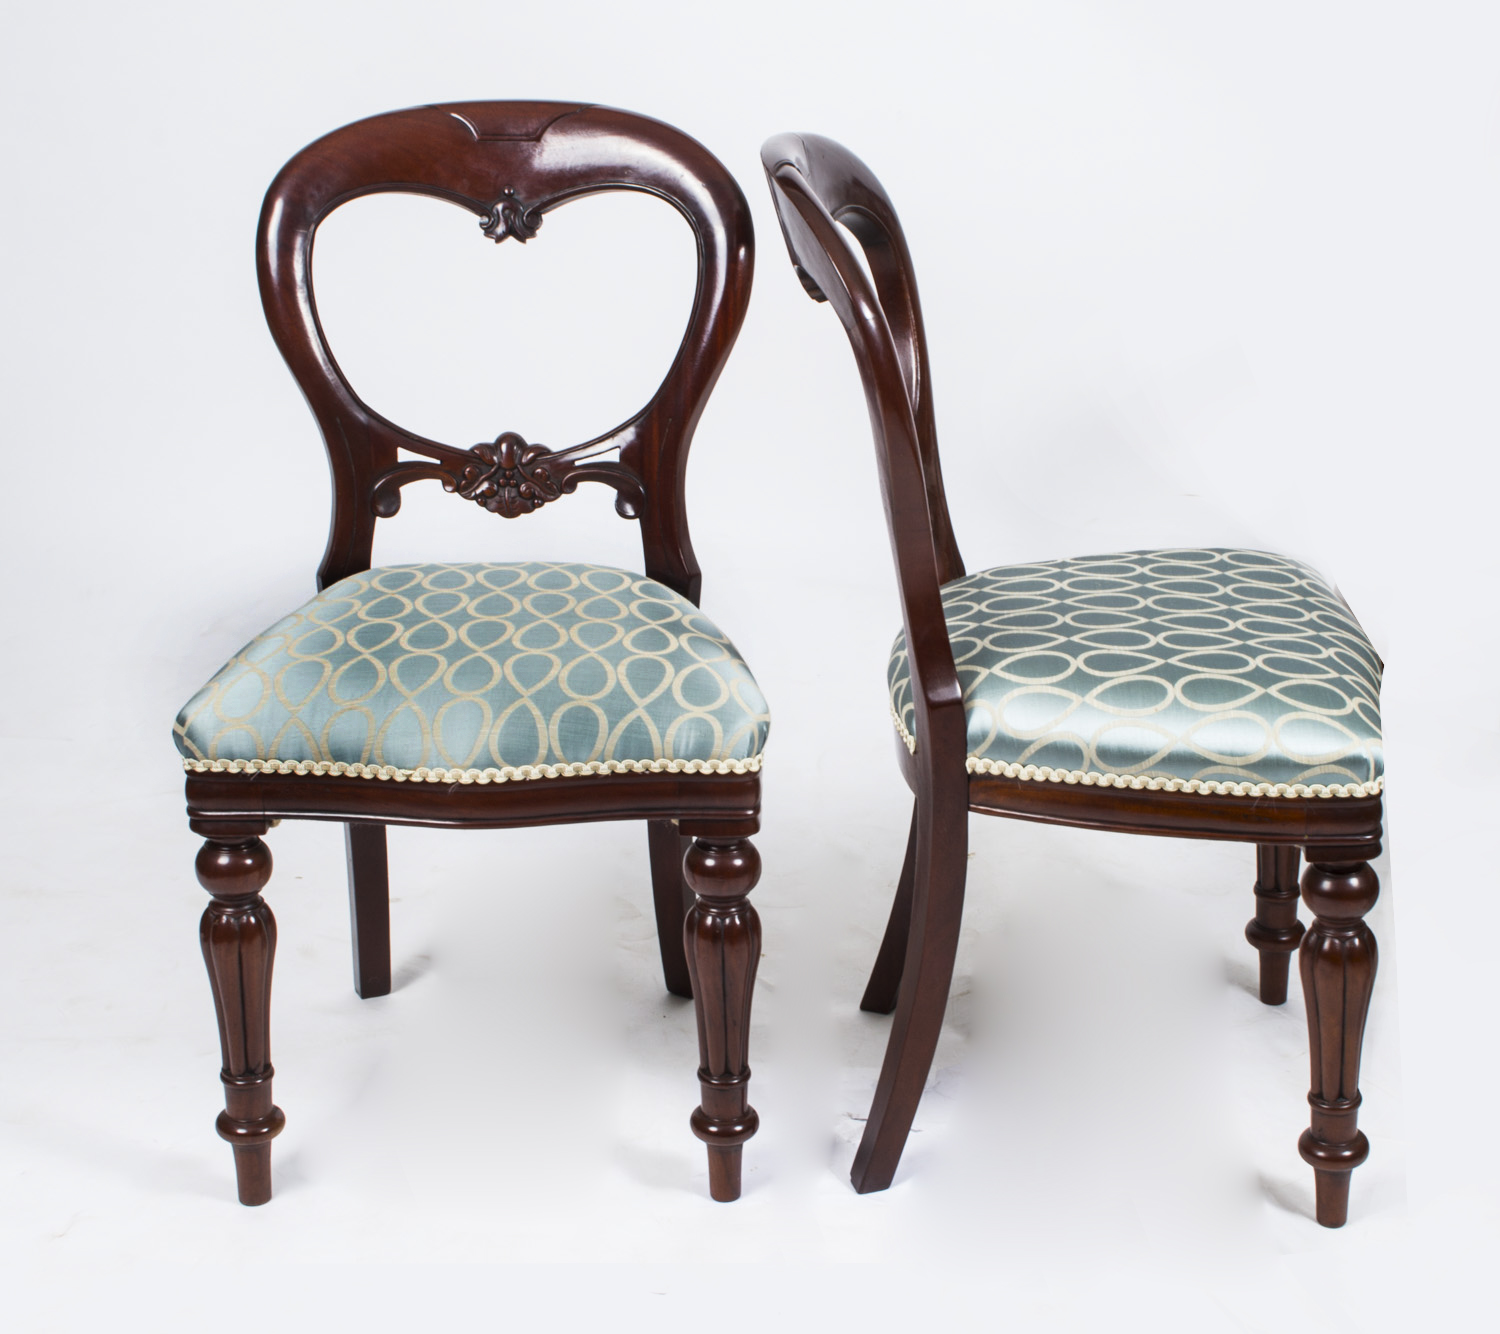 Vintage Looking Chairs: Dining Tables And Chairs